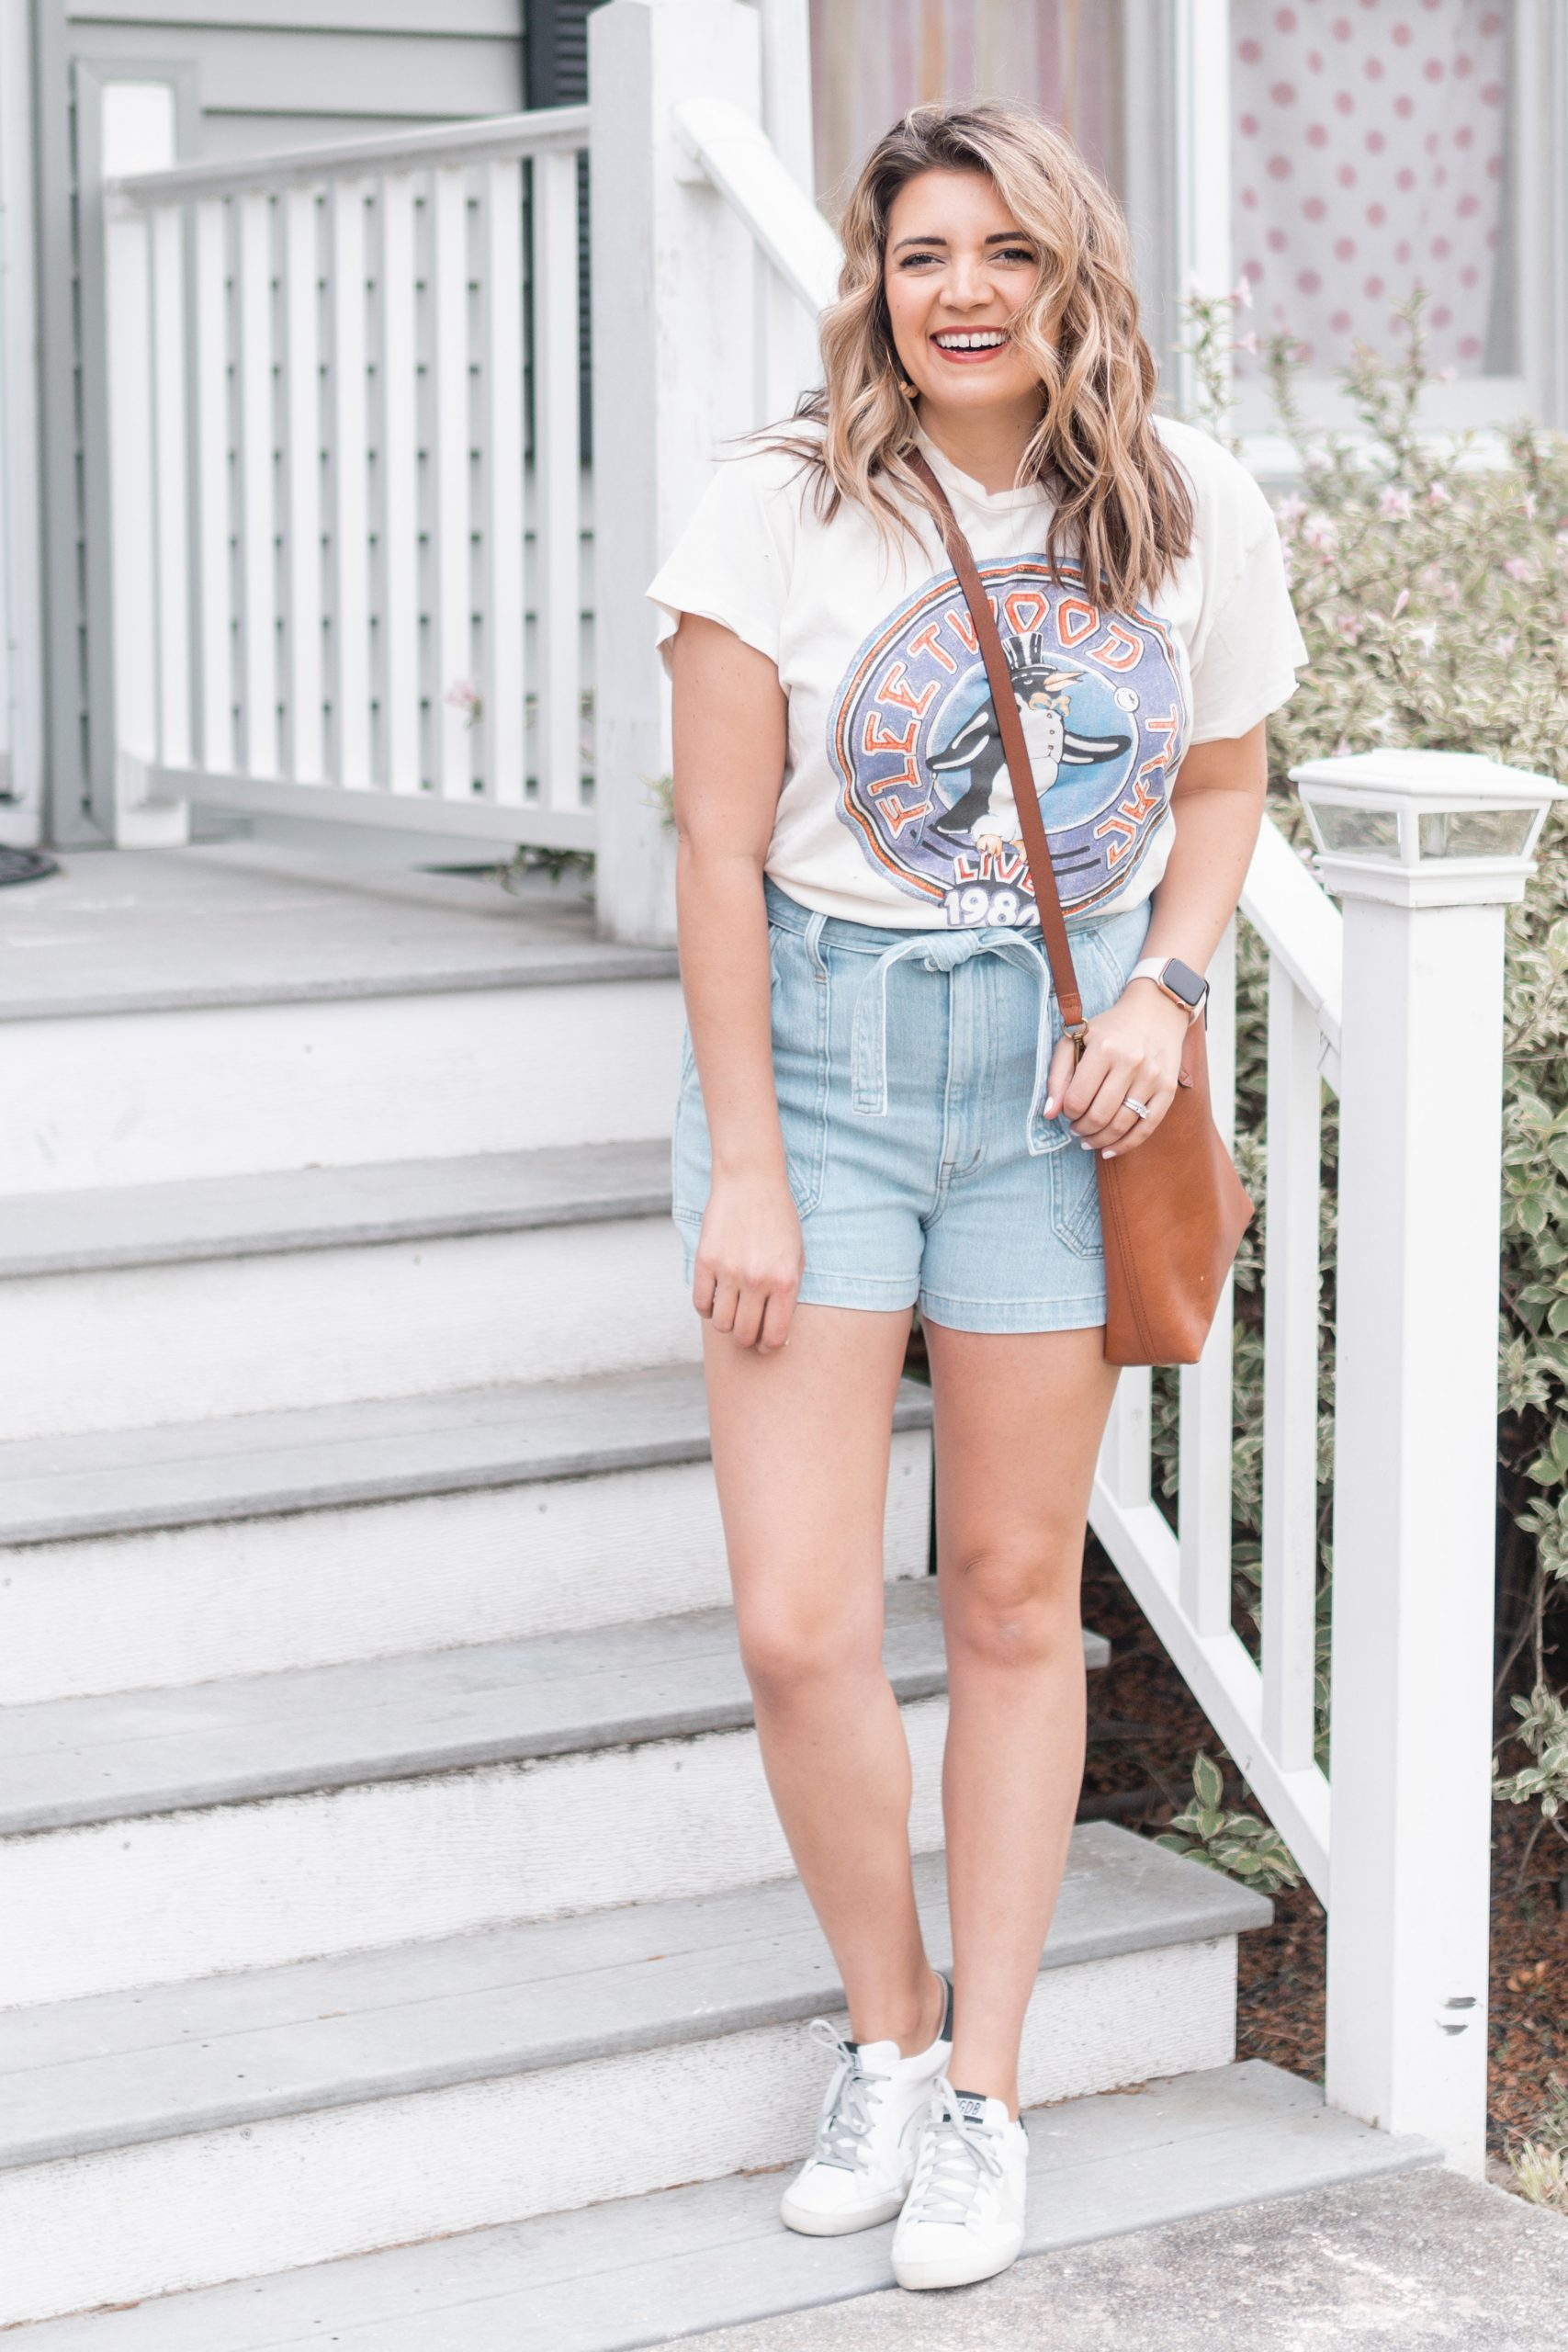 Virginia blogger, Lauren Dix, shares five paper bag shorts outfits with denim paper bag shorts!